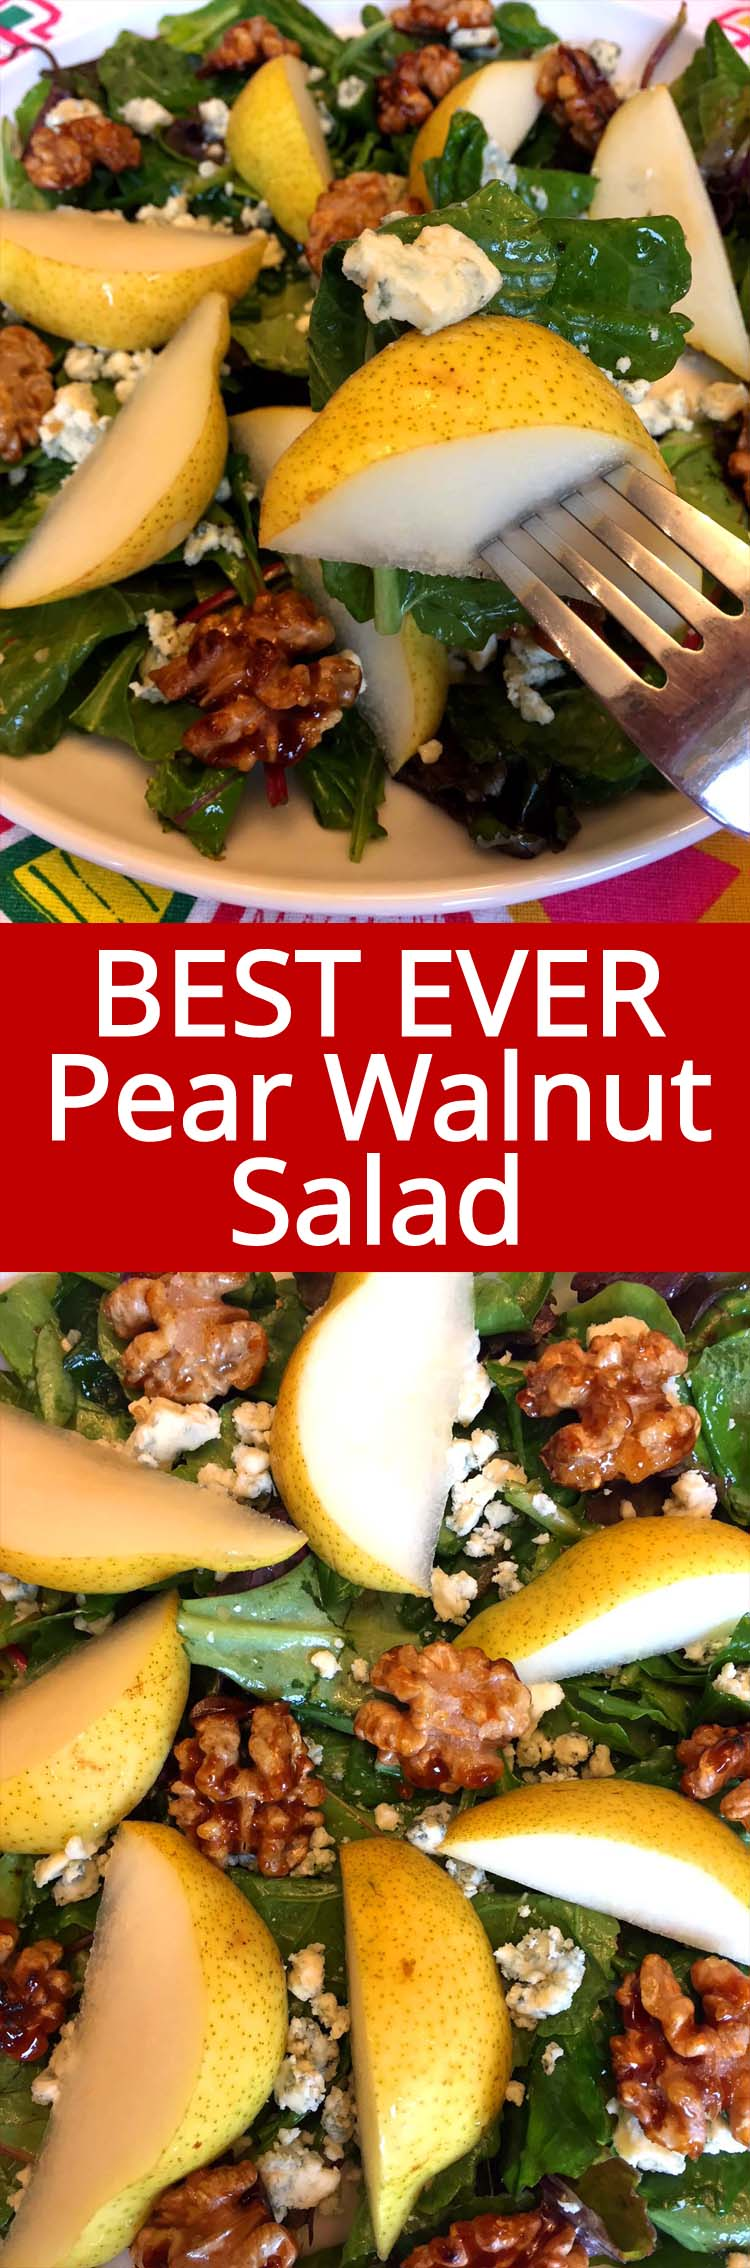 This pear walnut salad is amazing! Juicy pears, candied walnuts and blue cheese go so well together! So easy to make, everybody loves this salad!